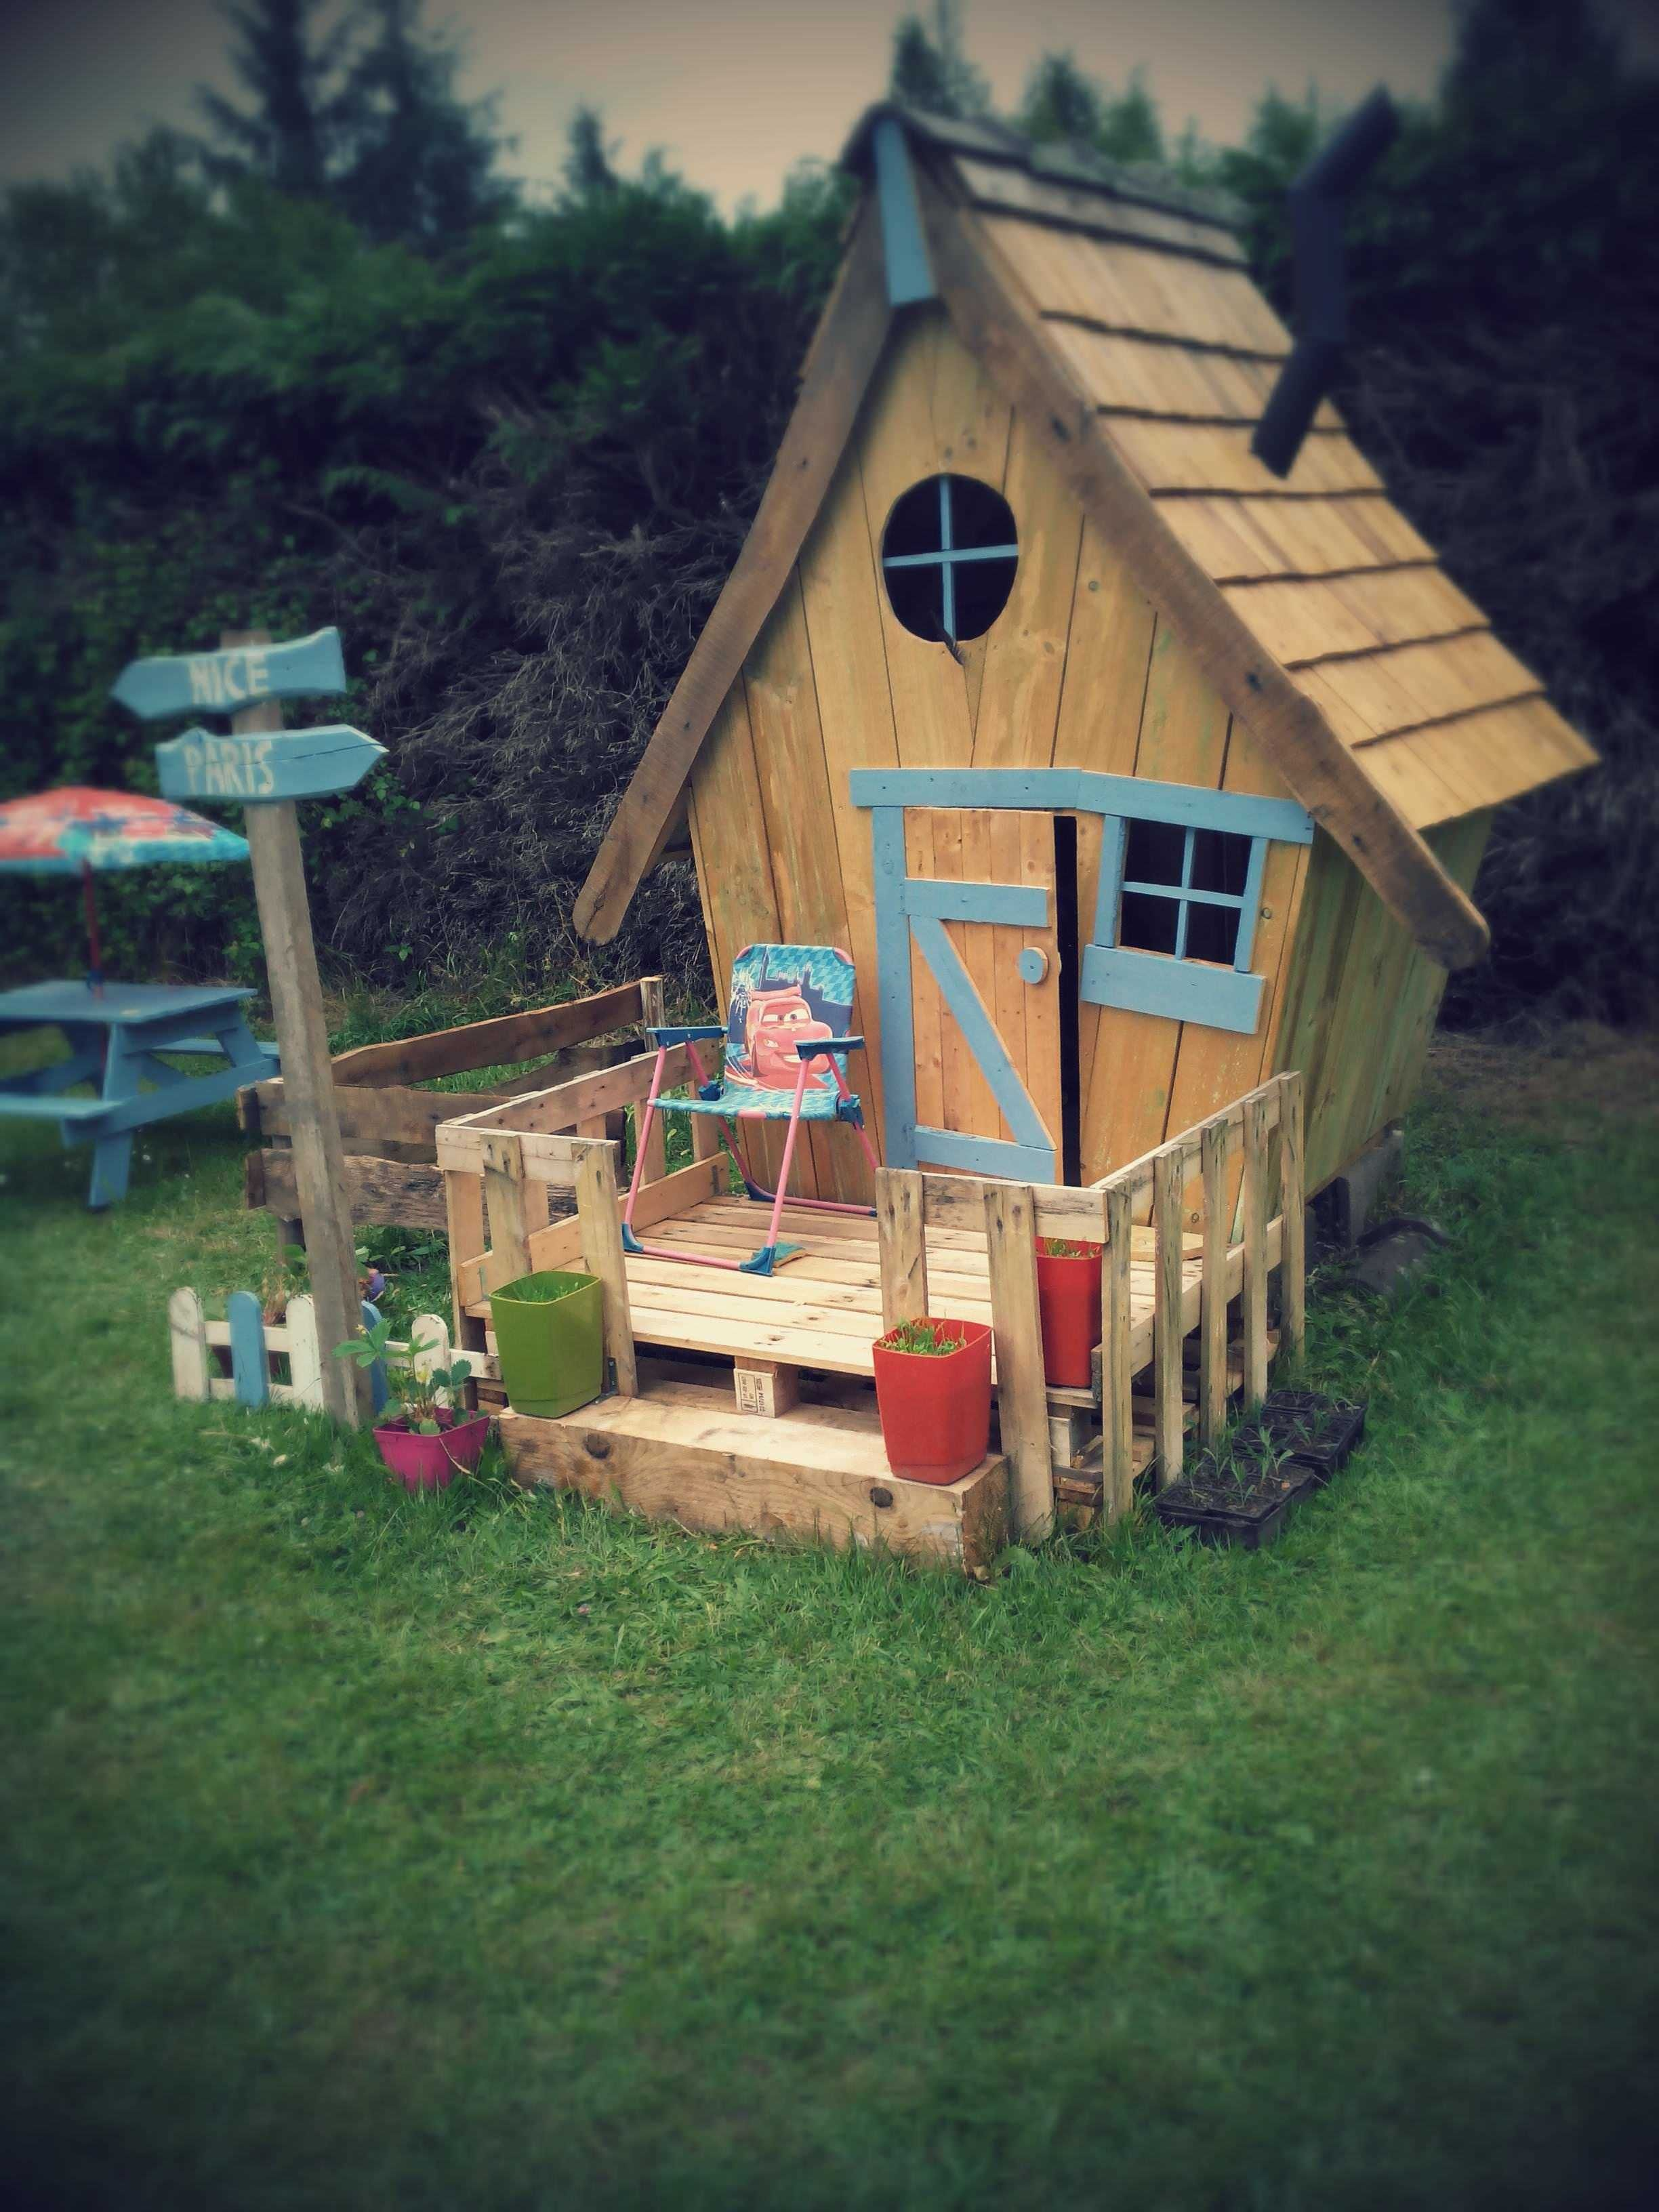 House Made From Pallets Cabane Enfants Faasson Tim Burton Fairy Tale Kids Pallet Hut From